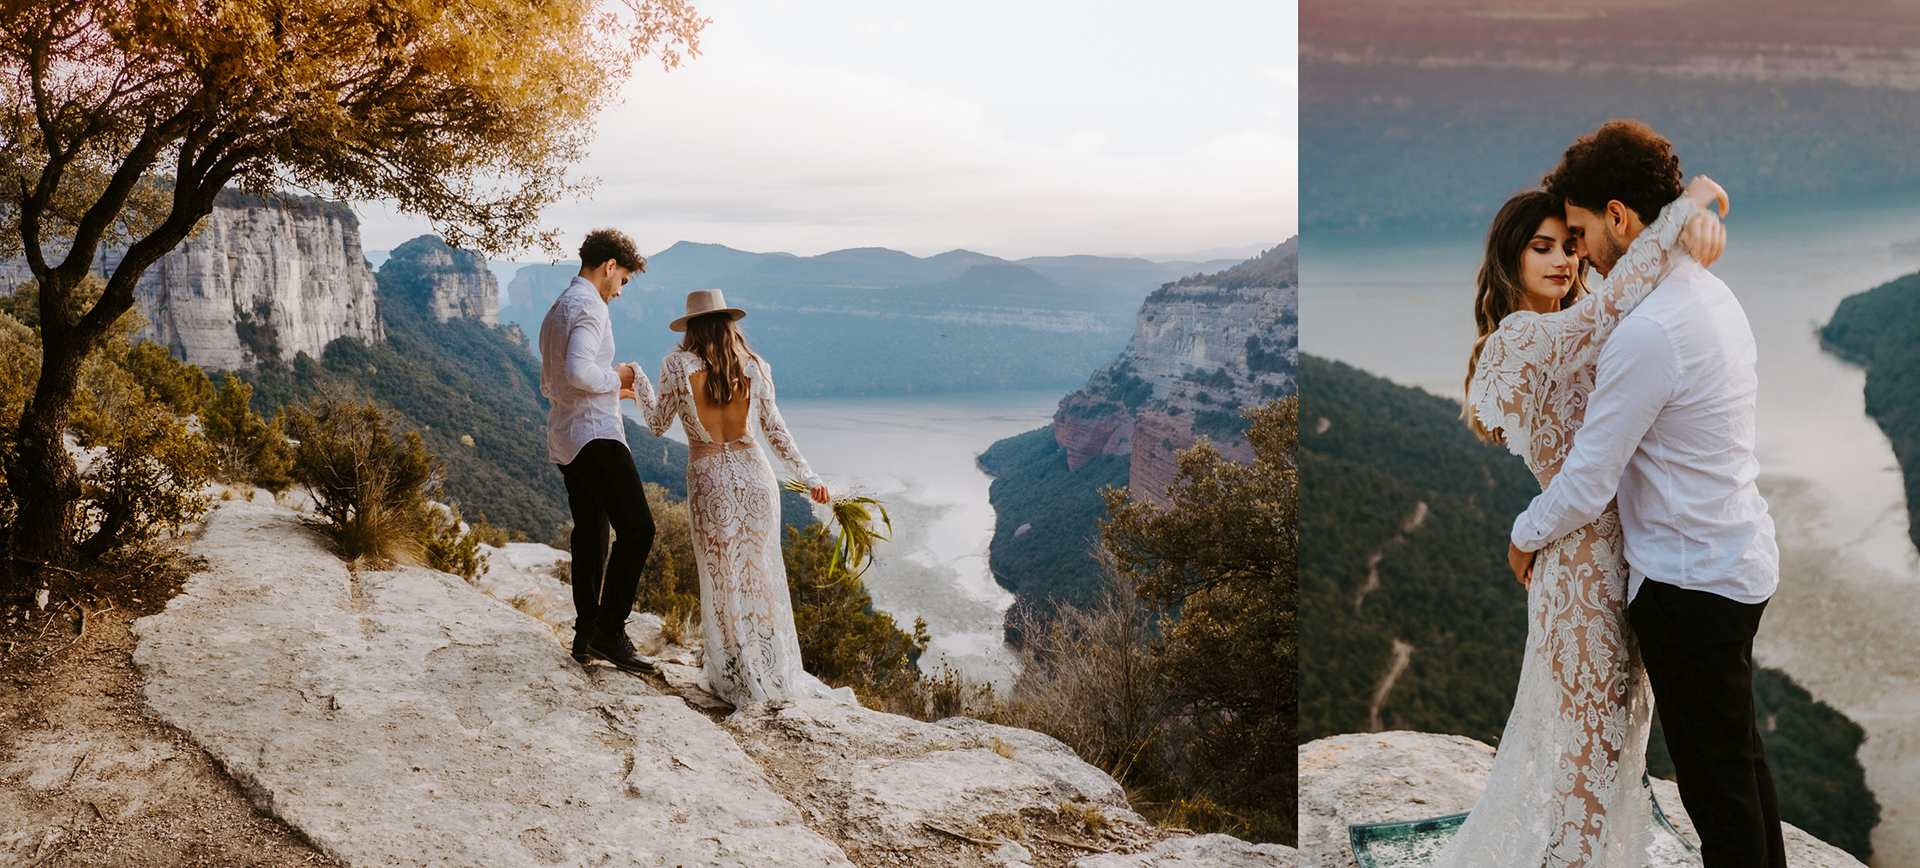 Barcelona Elopement Wedding package for Morro D'Labella . Boho Couples at cliffs